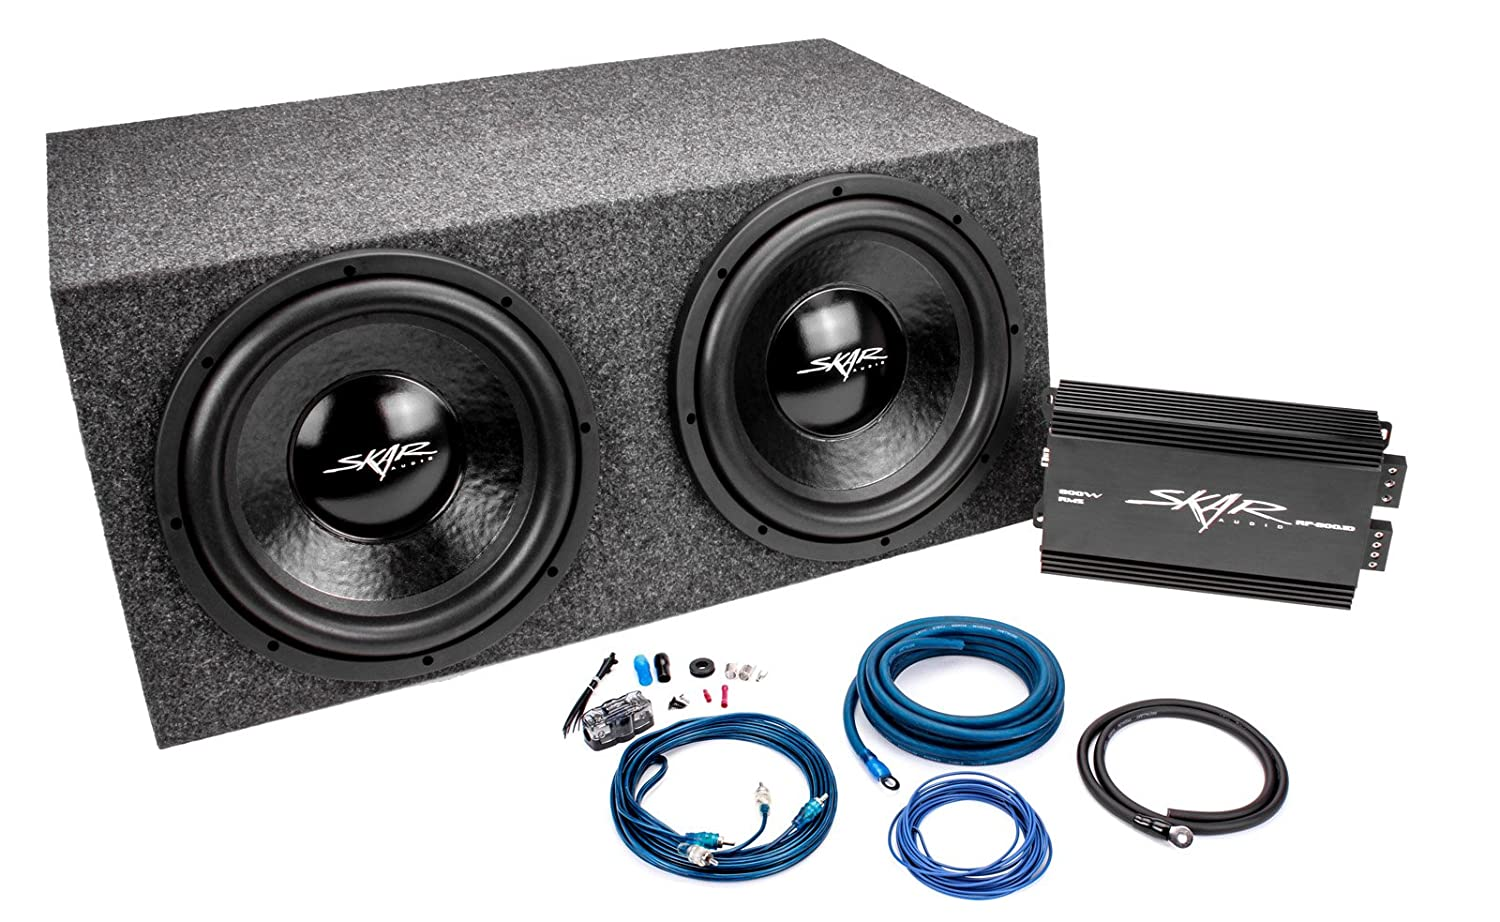 Best Subwoofers For Car Audio Systems 2018 Buyers Guide And Jl Marine Amp Wiring Kit Marinerated This Is Another All In One Subwoofer Package Those Who Dont Want To Bother With The Smallest Details Need Get Their System Going